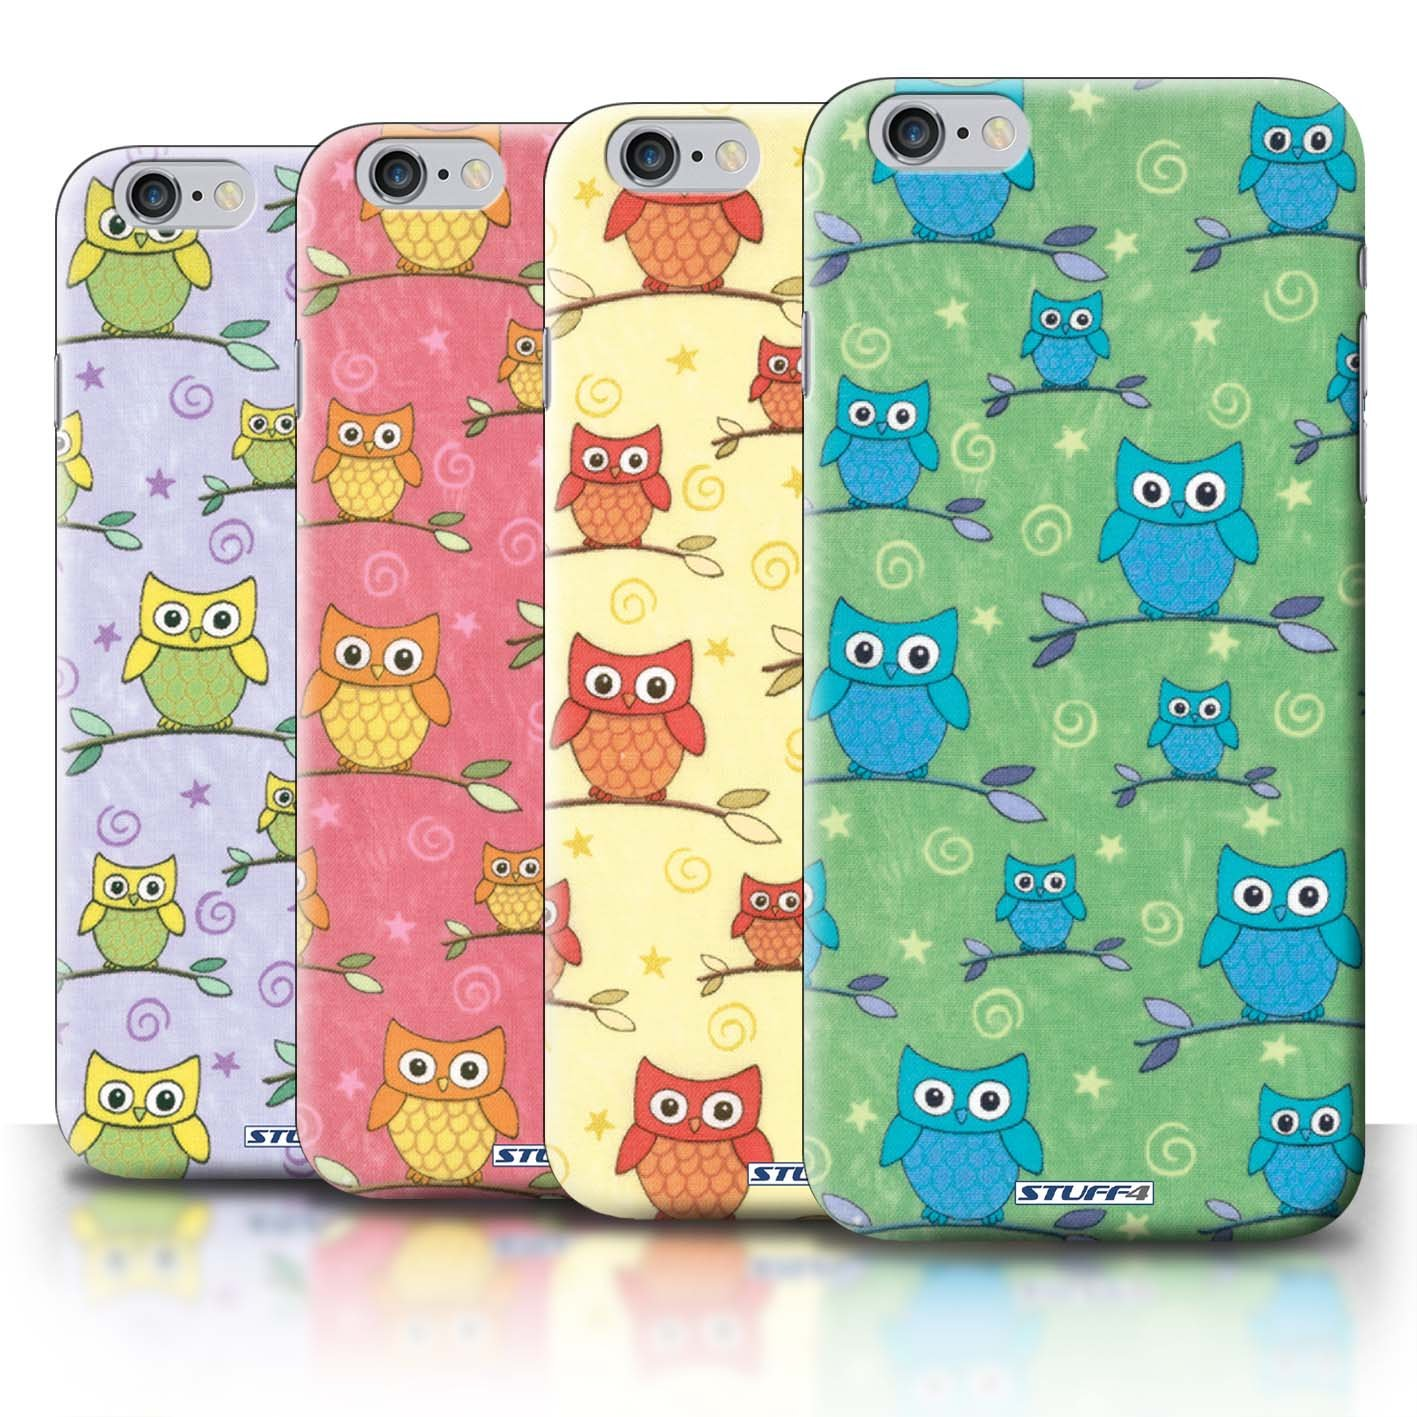 STUFF4 Phone Case / Cover for iPhone 6+/Plus 5.5 / Pack (11 pcs) / Cute Owl Pattern Collection / by Deb Strain / Penny Lane Publishing, Inc.Customer review and more description